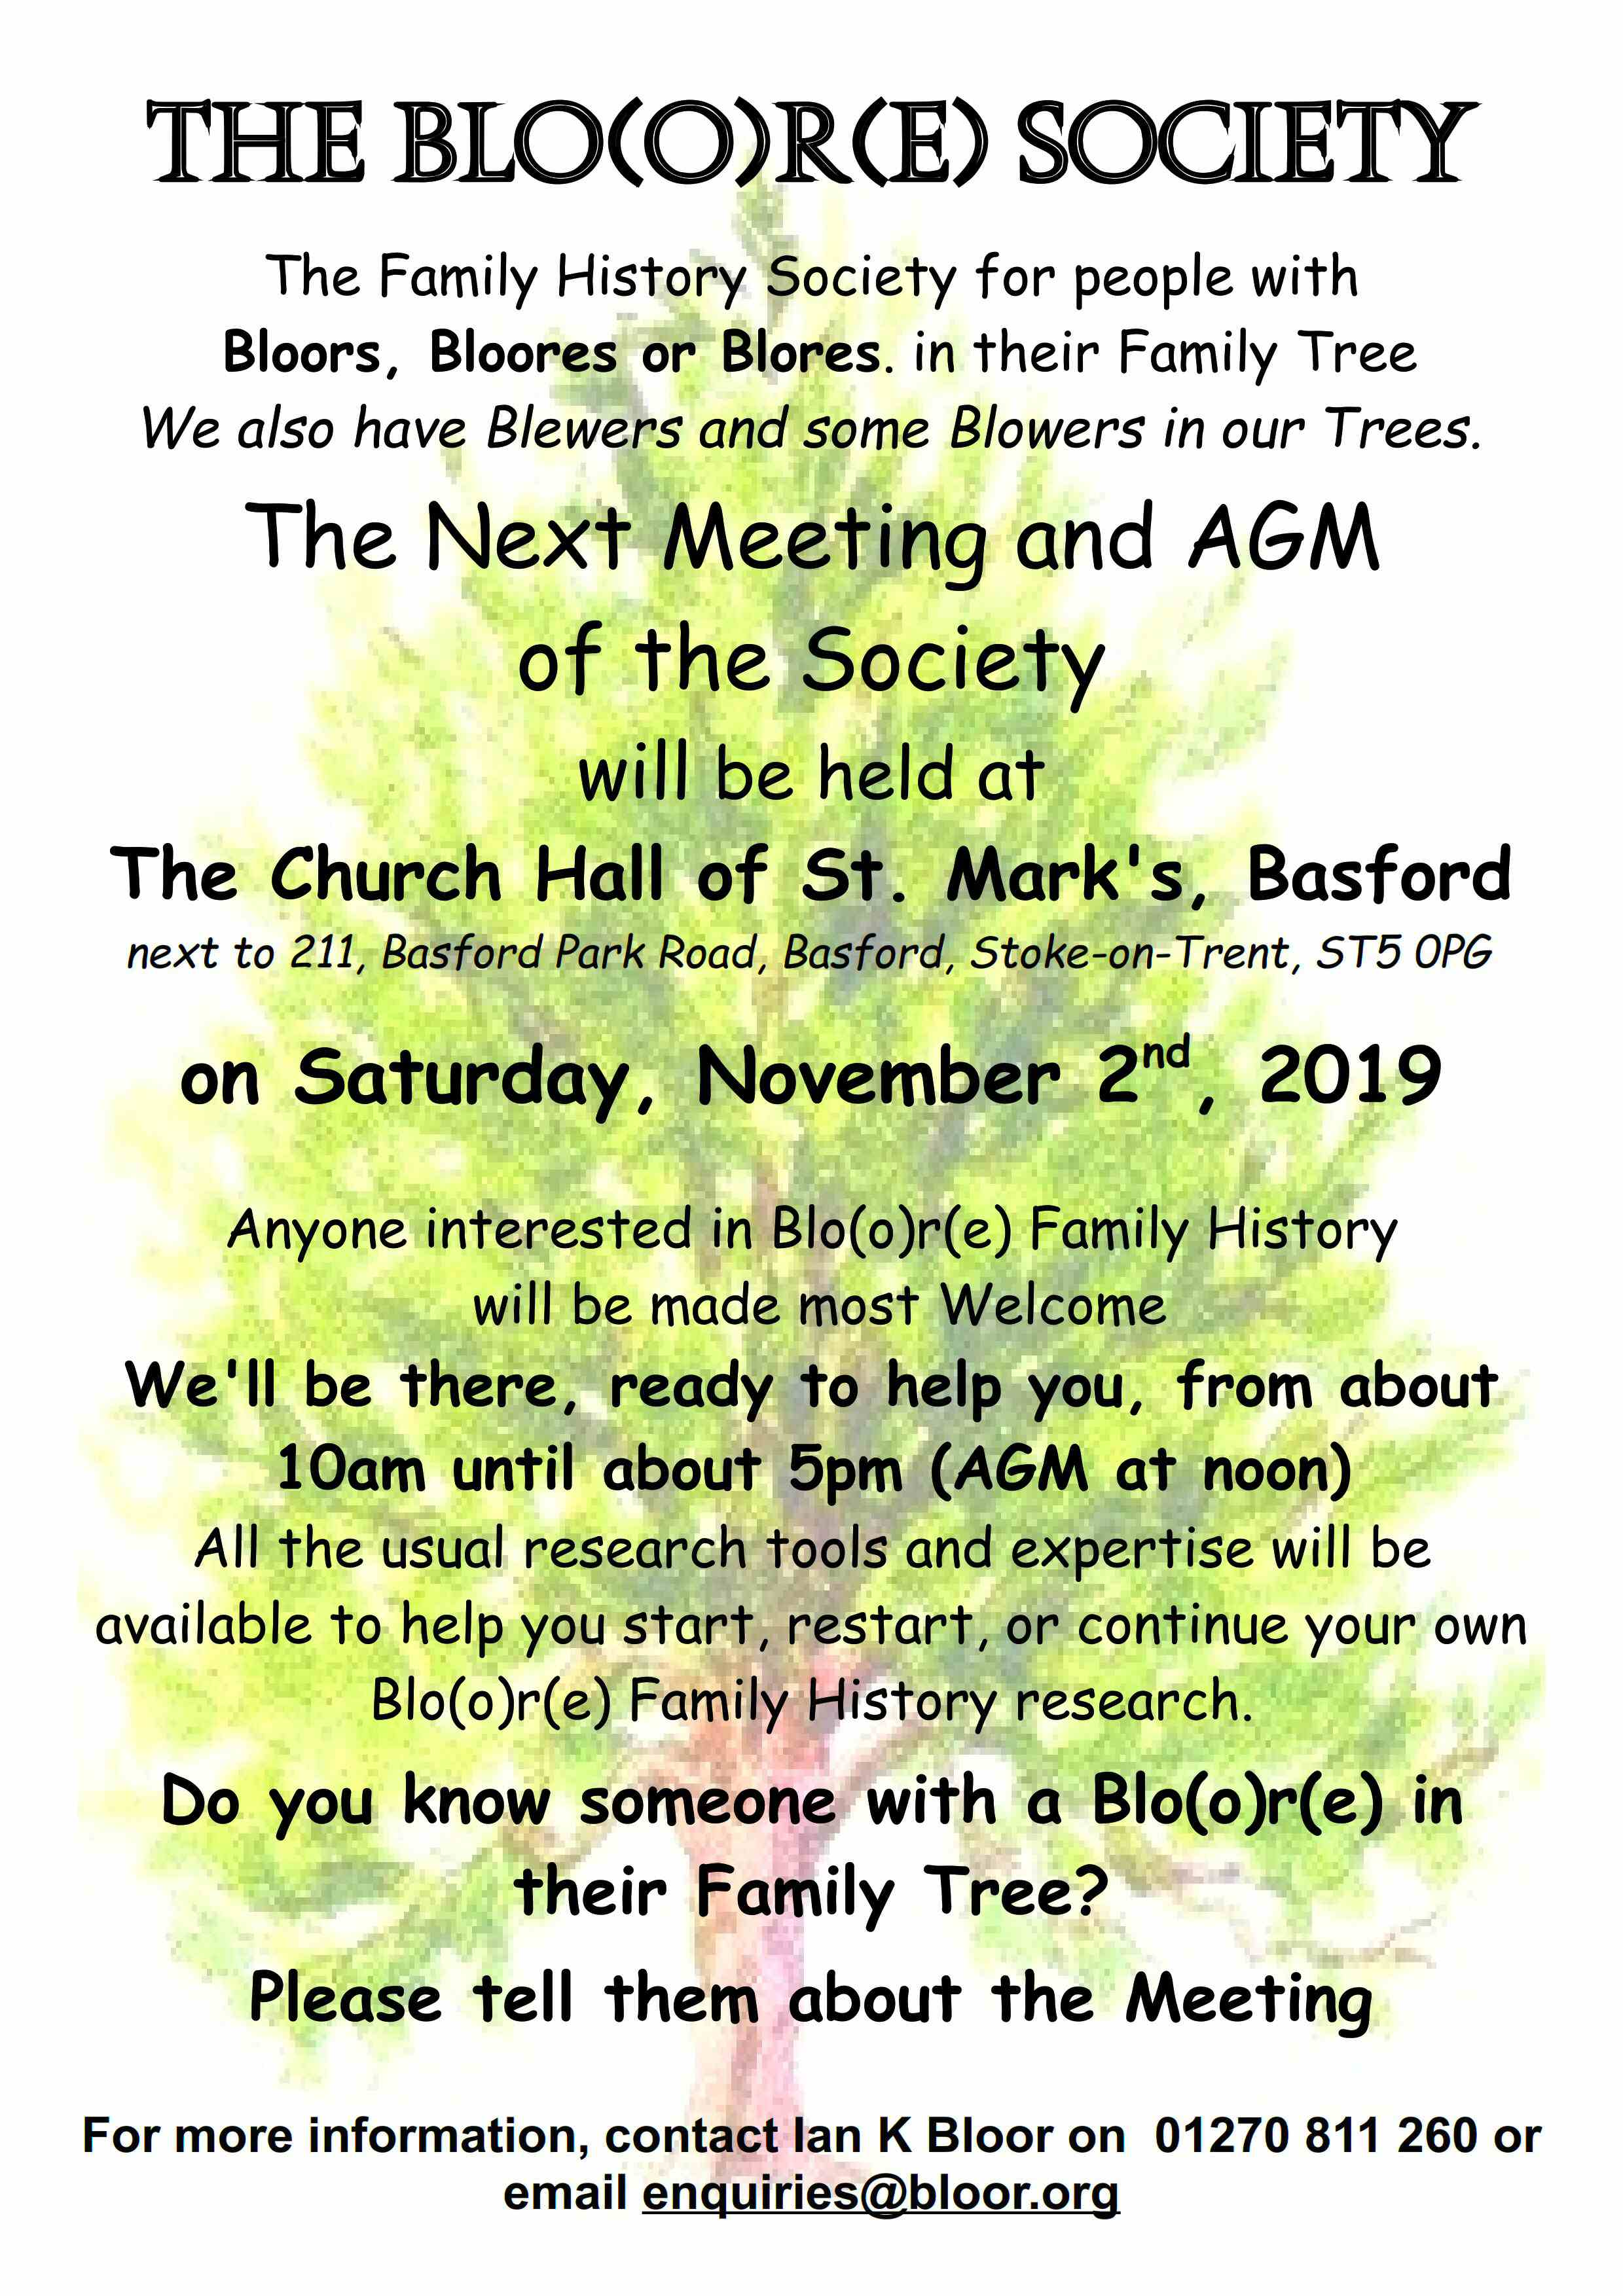 Bloore Society Meeting and AGM